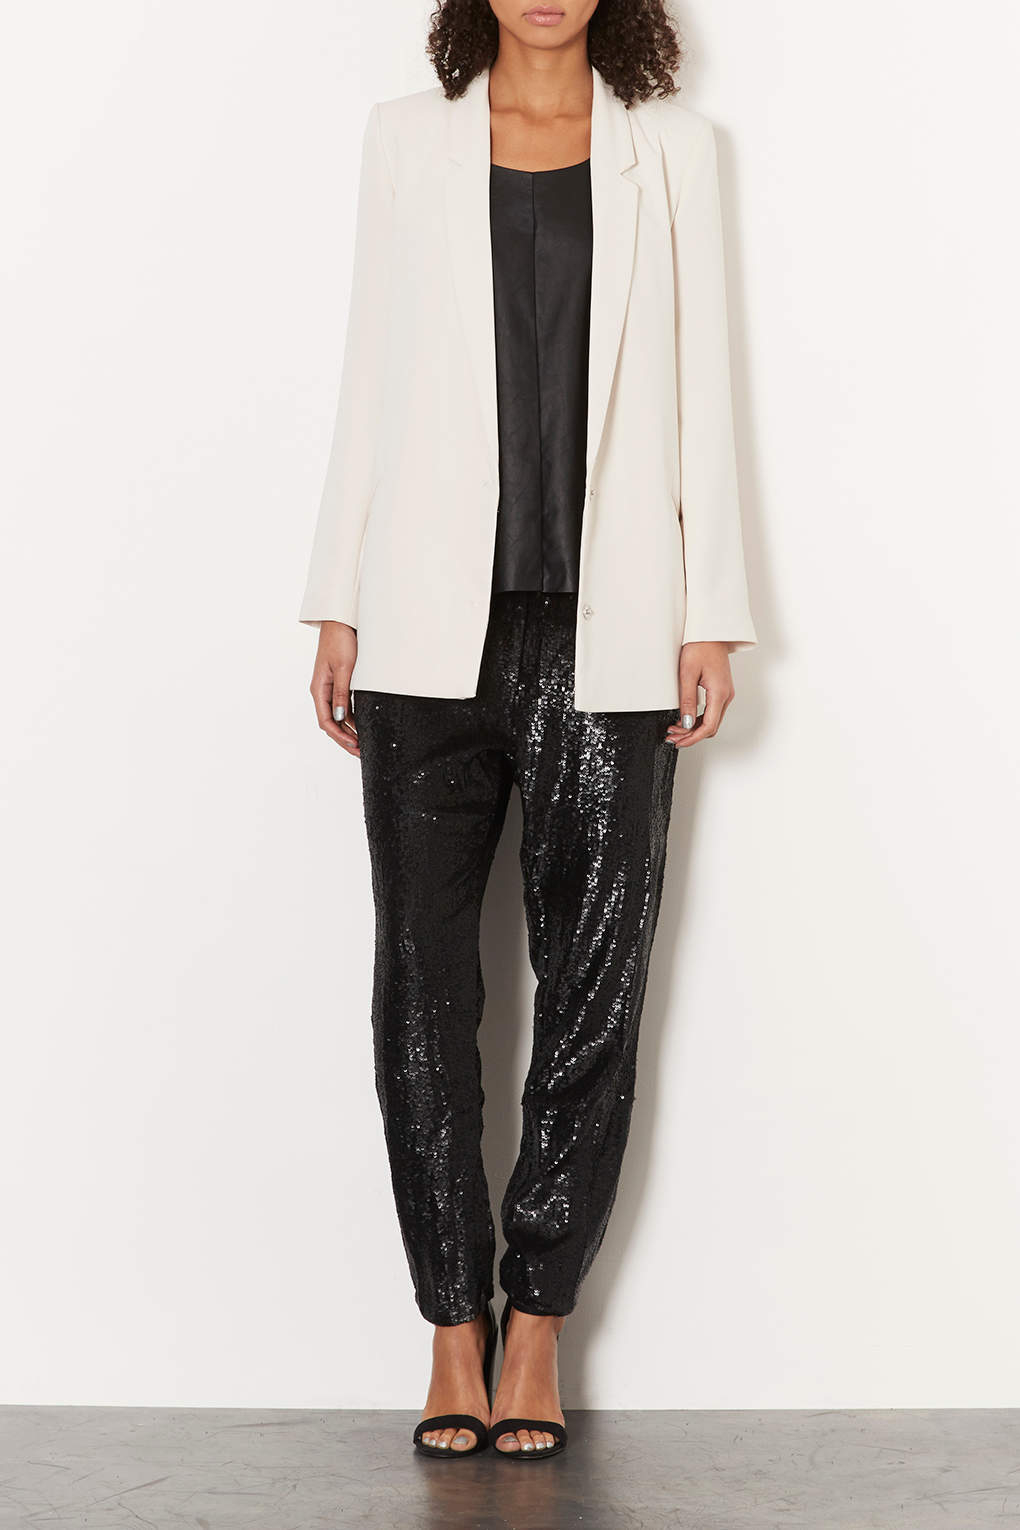 Lyst Topshop Sequin Slim Trousers In Black